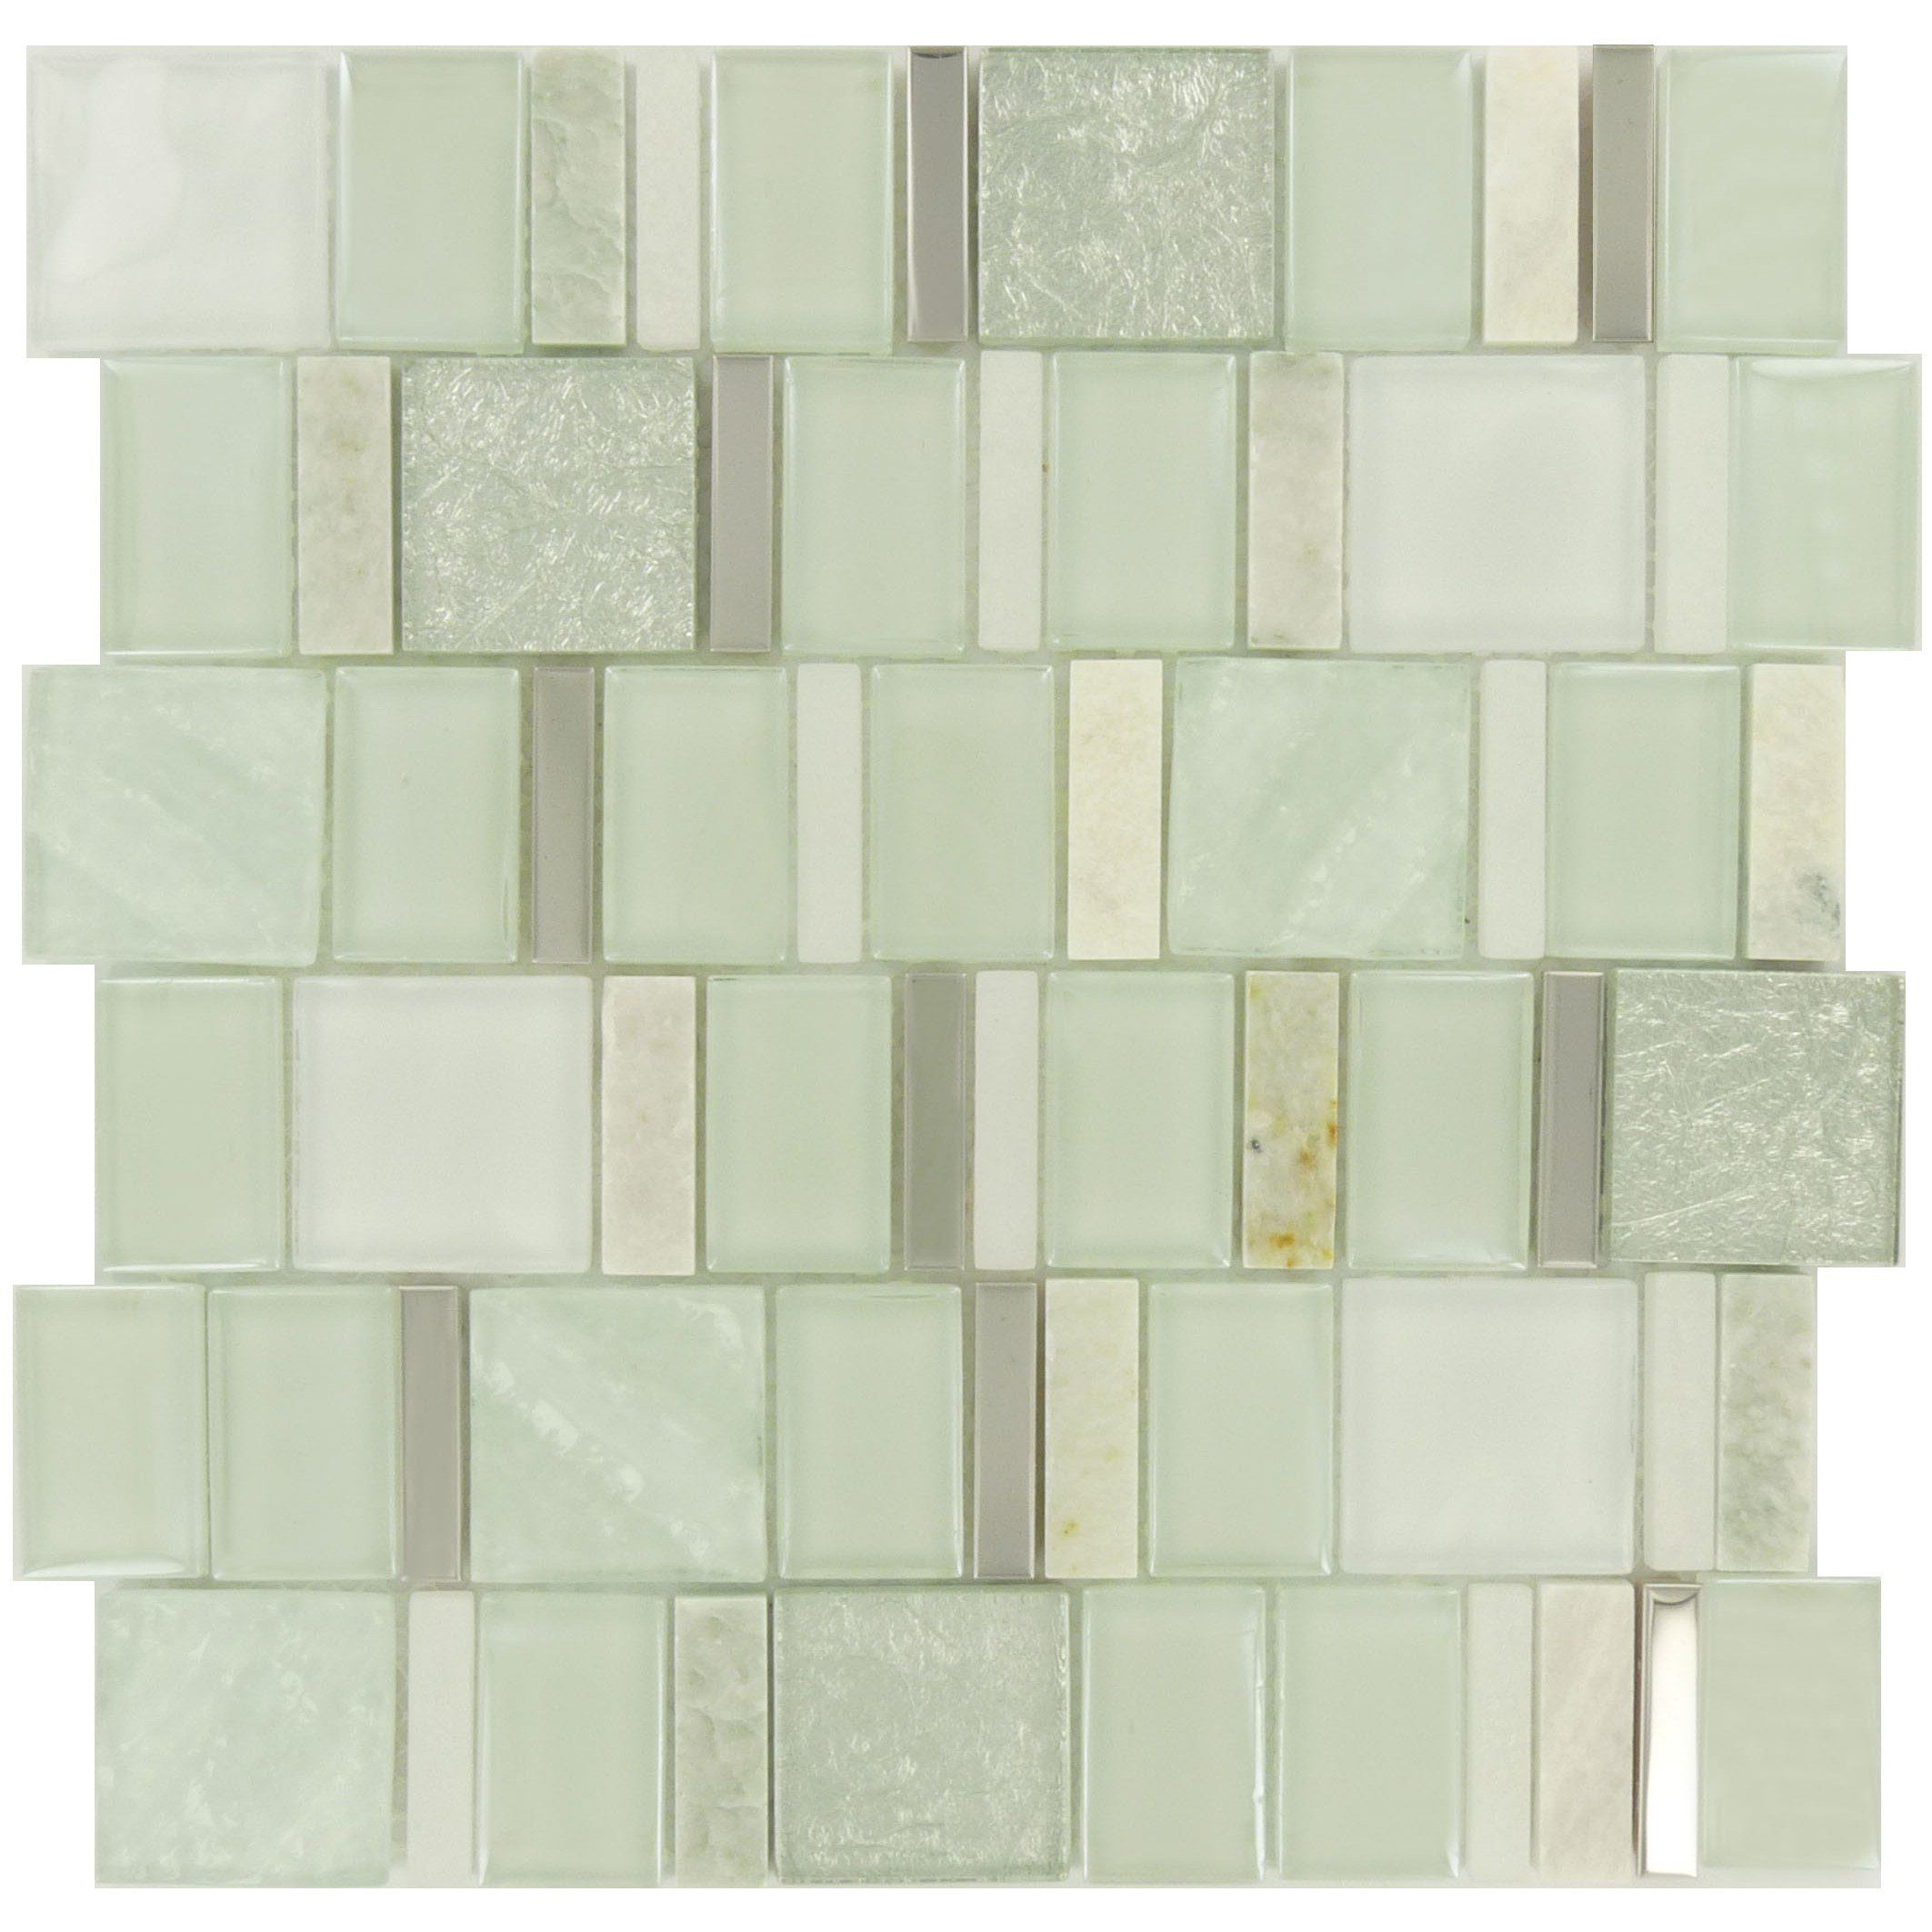 "Pine Green Unique Shapes ""Glass Stone & Metal"" Glossy & Matte Tile"